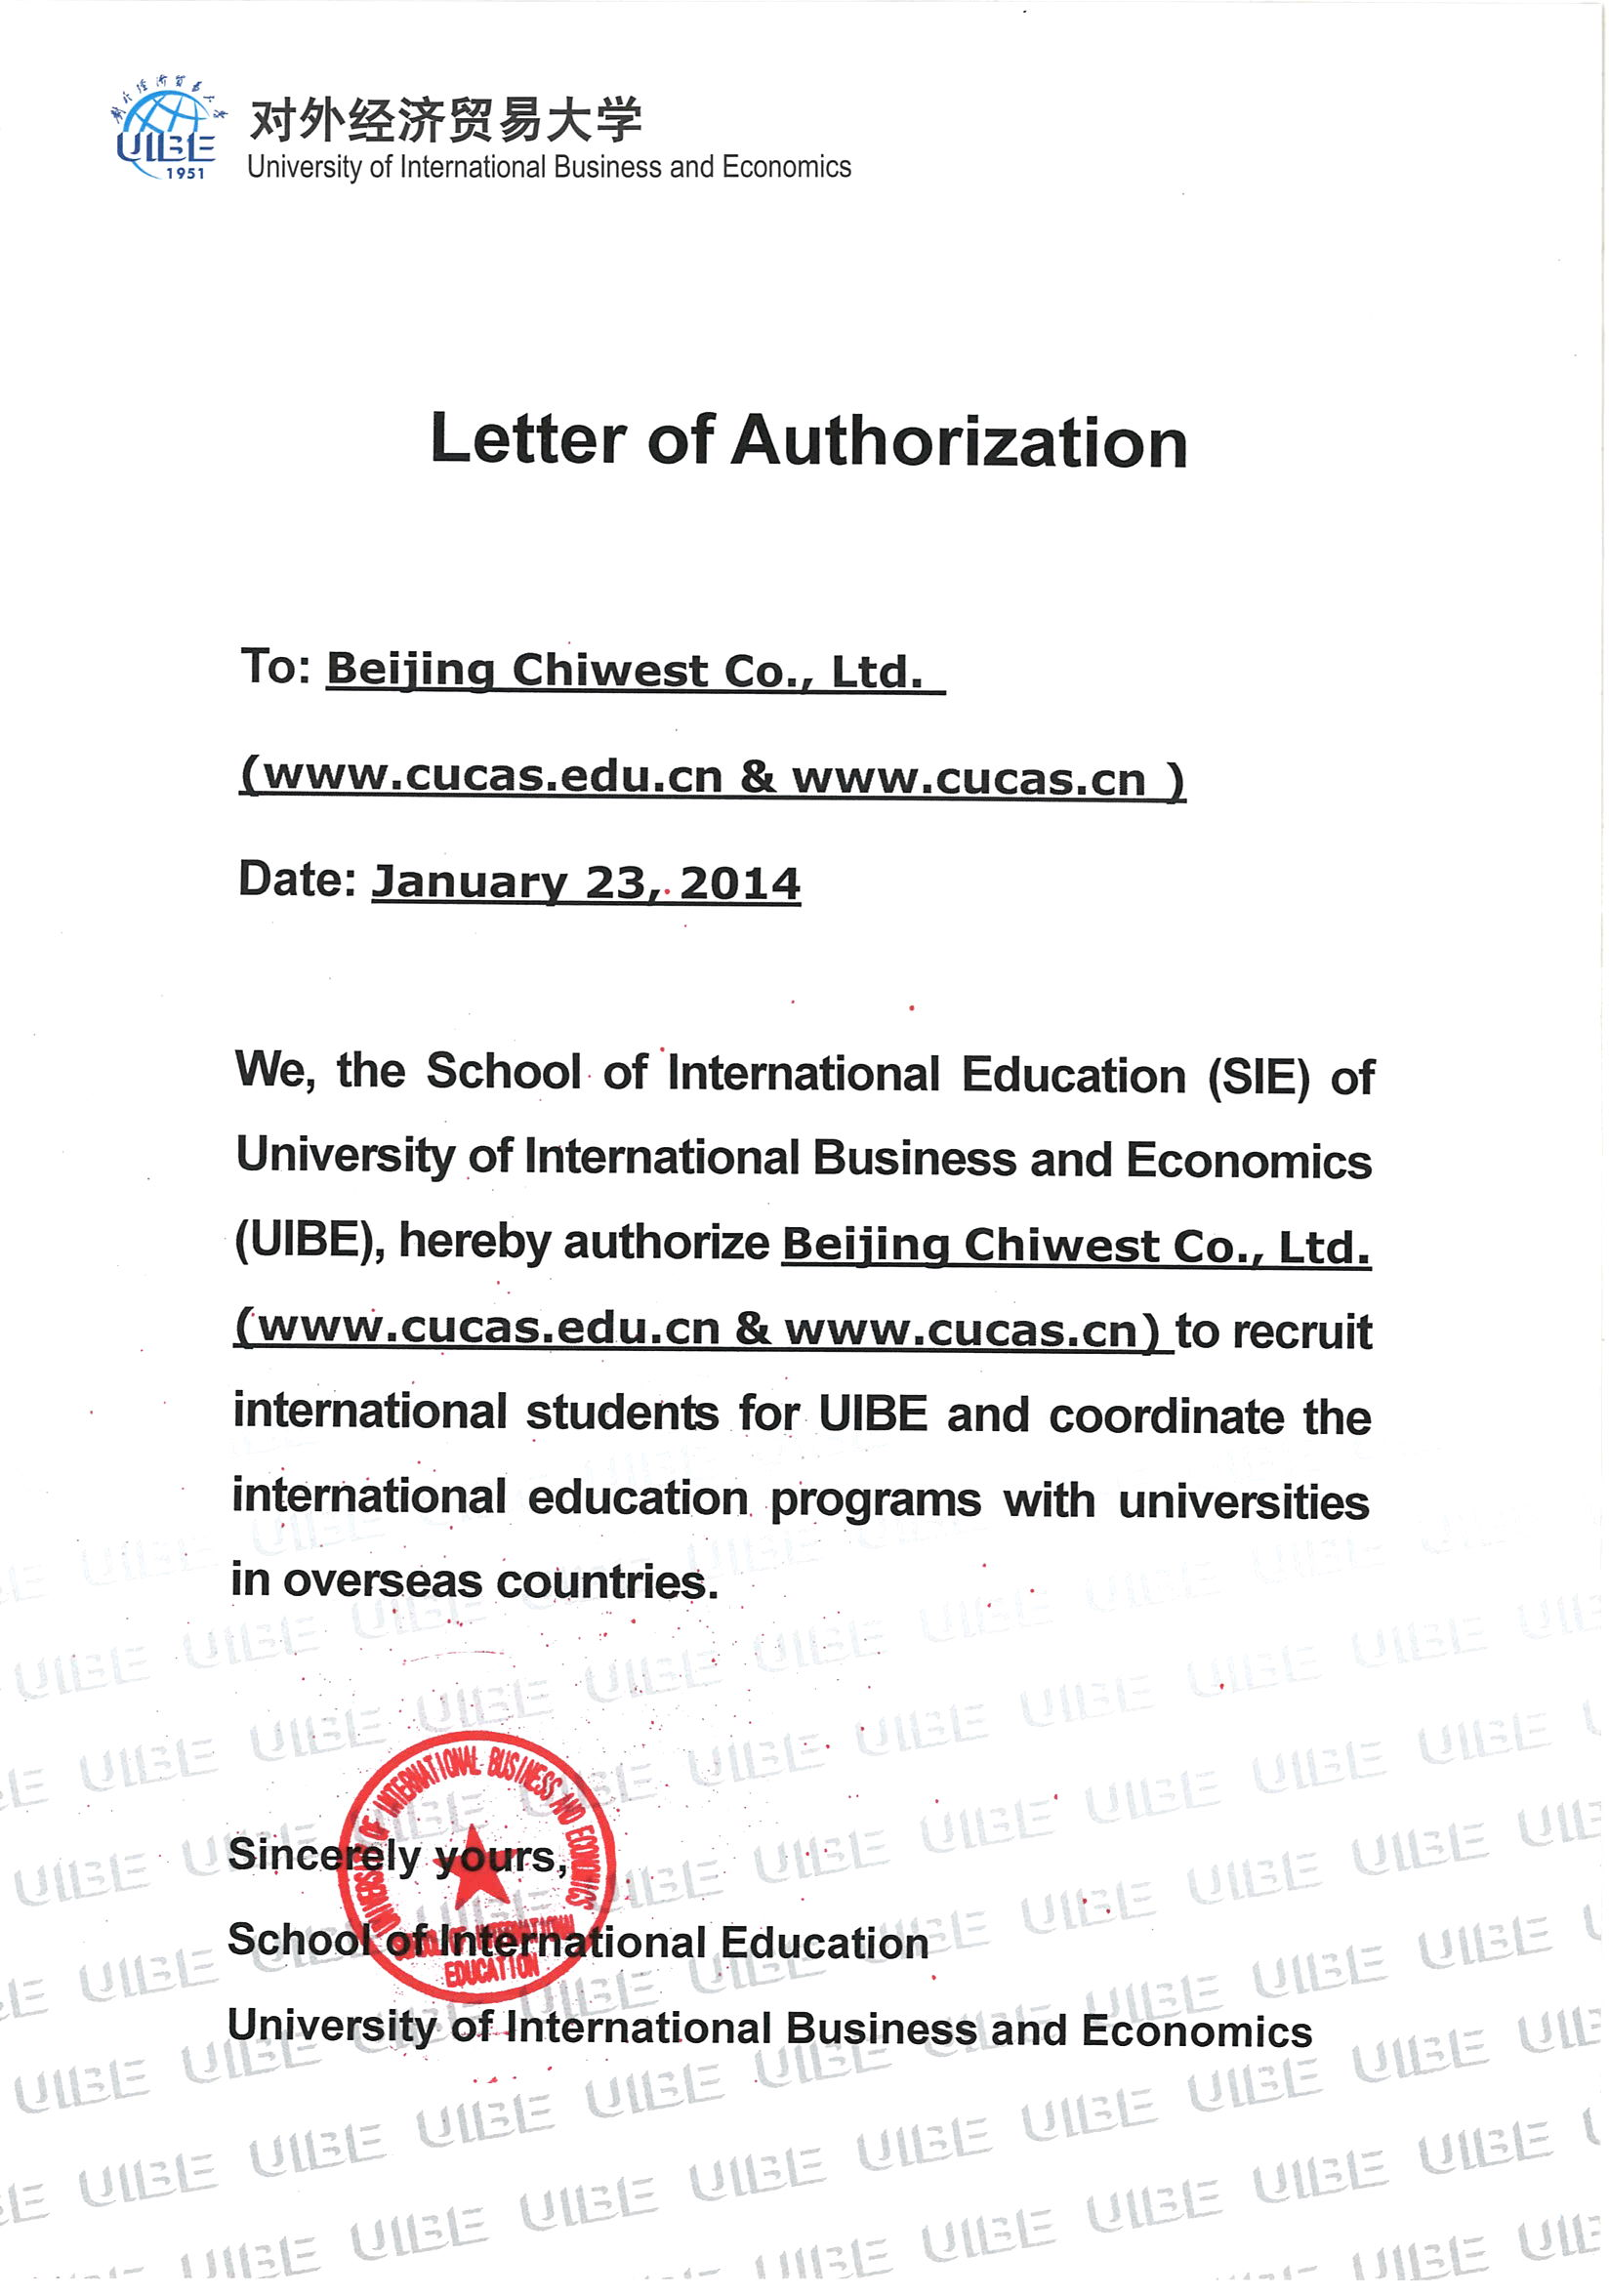 university of international business and economics authorization letter study in china cucas